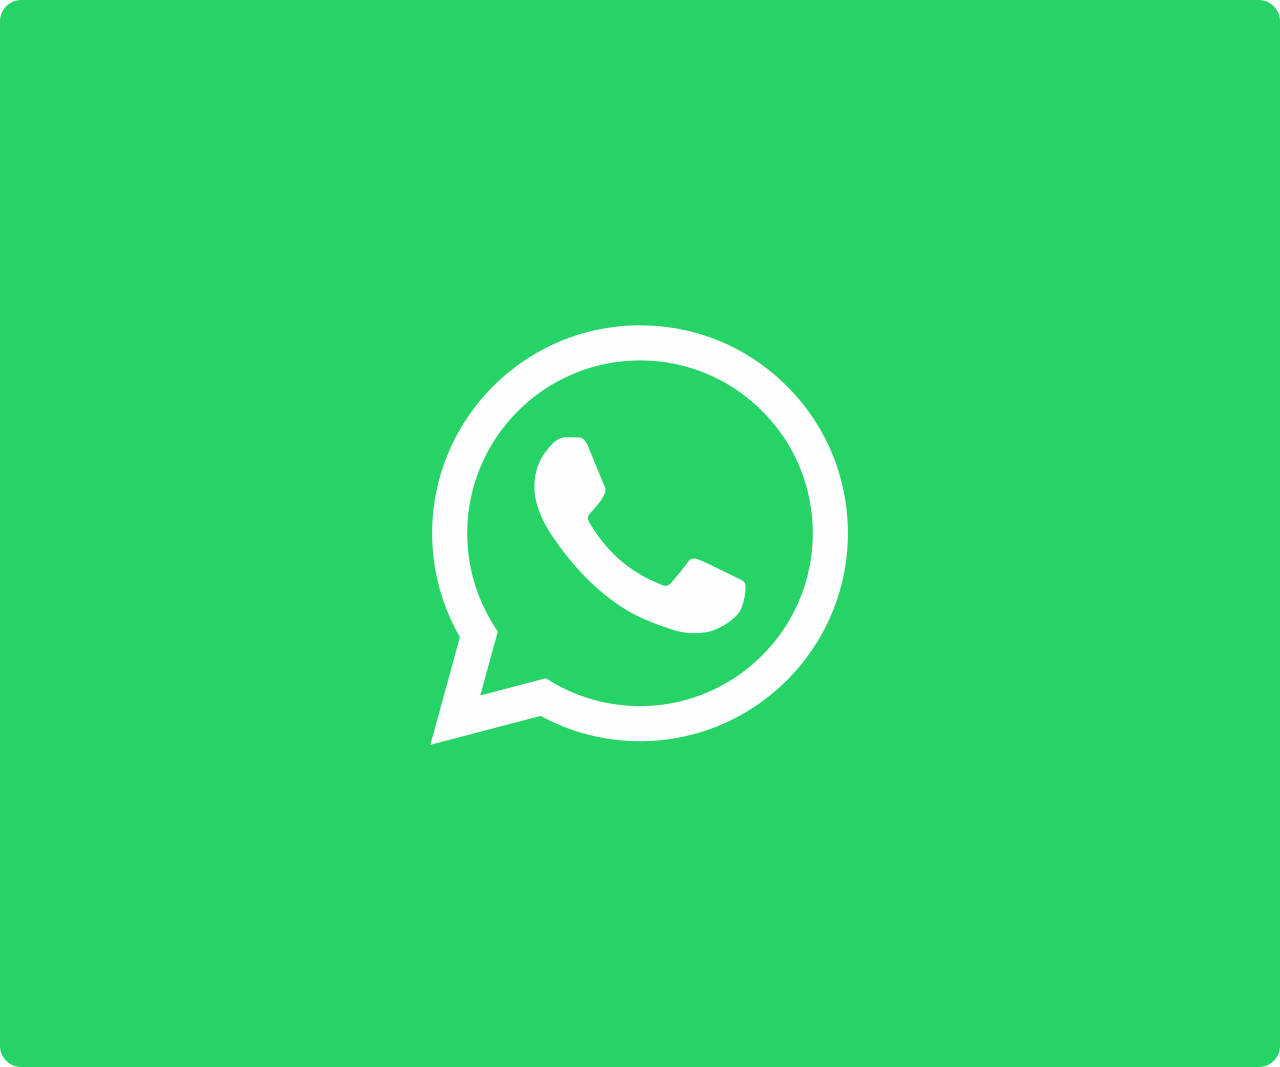 How to enable two step verification on whatsapp